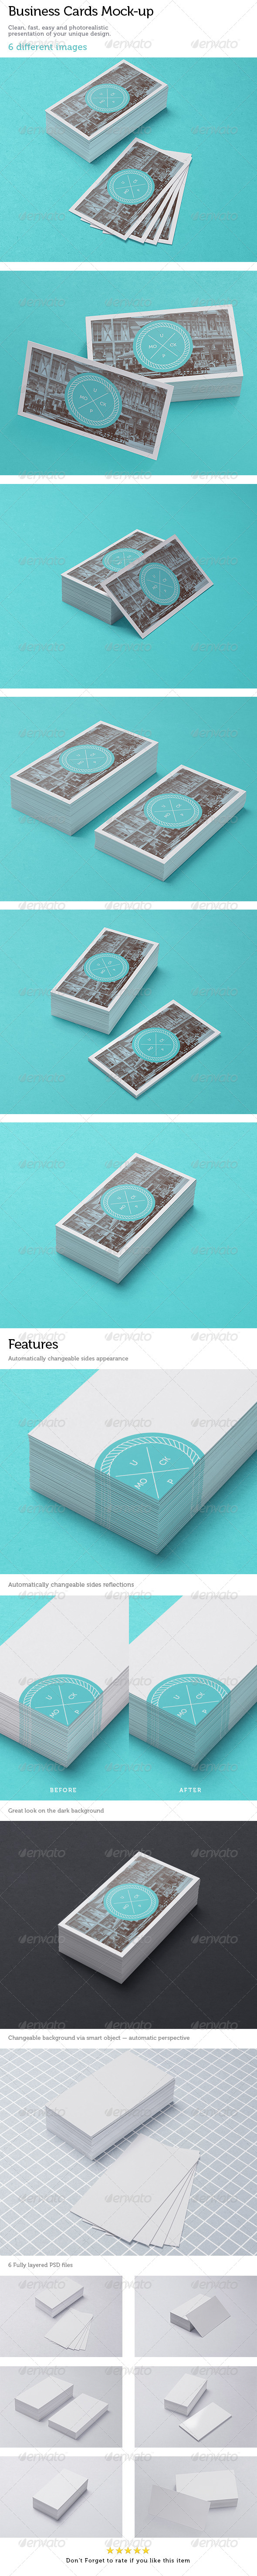 Business Cards Studio Mock-up 3 - Stationery Print